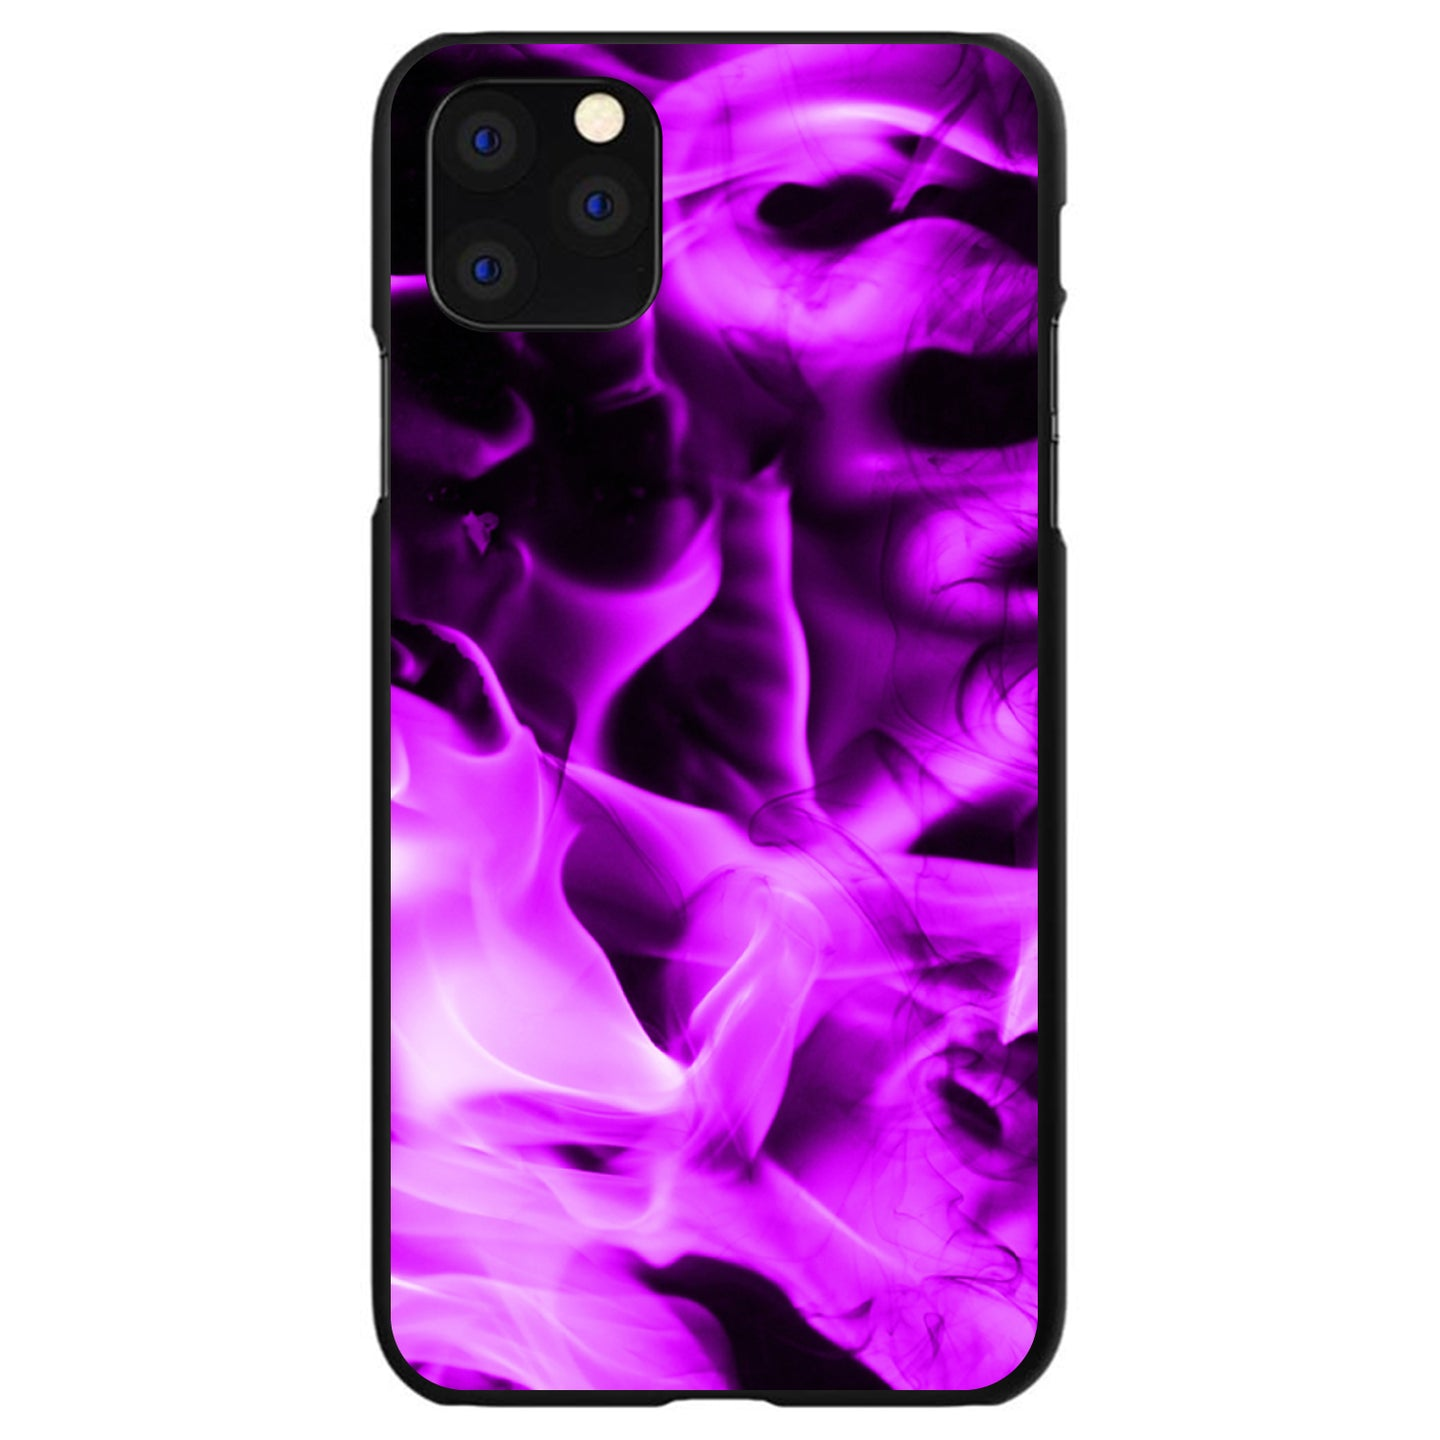 DistinctInk® Hard Plastic Snap-On Case for Apple iPhone - Violet Flame Fire